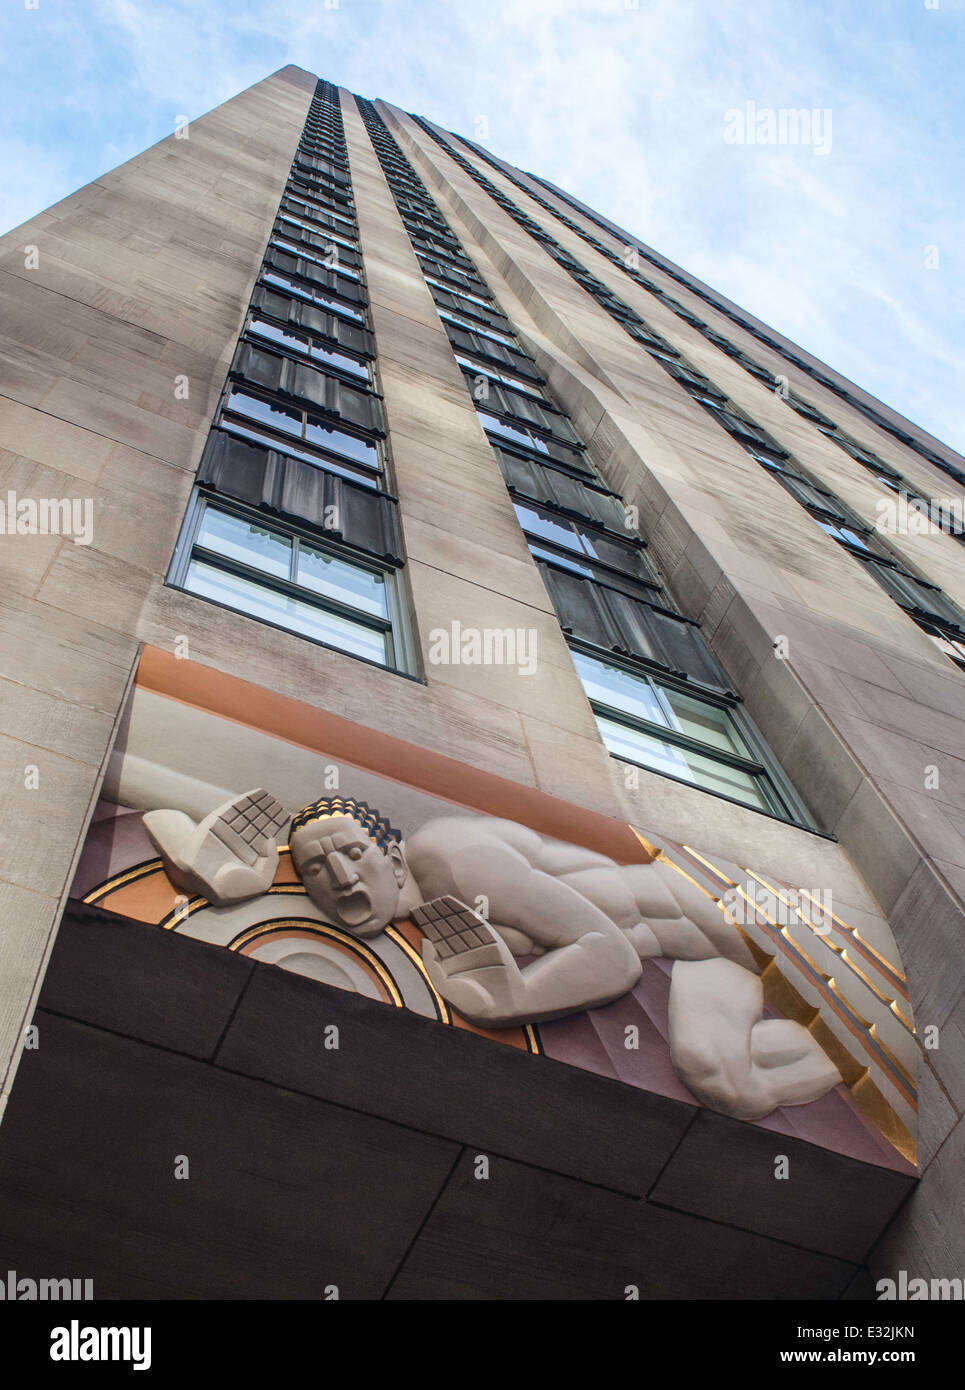 Low relief art deco panel of 'Sound' at 30 Rockefeller Plaza - Stock Image